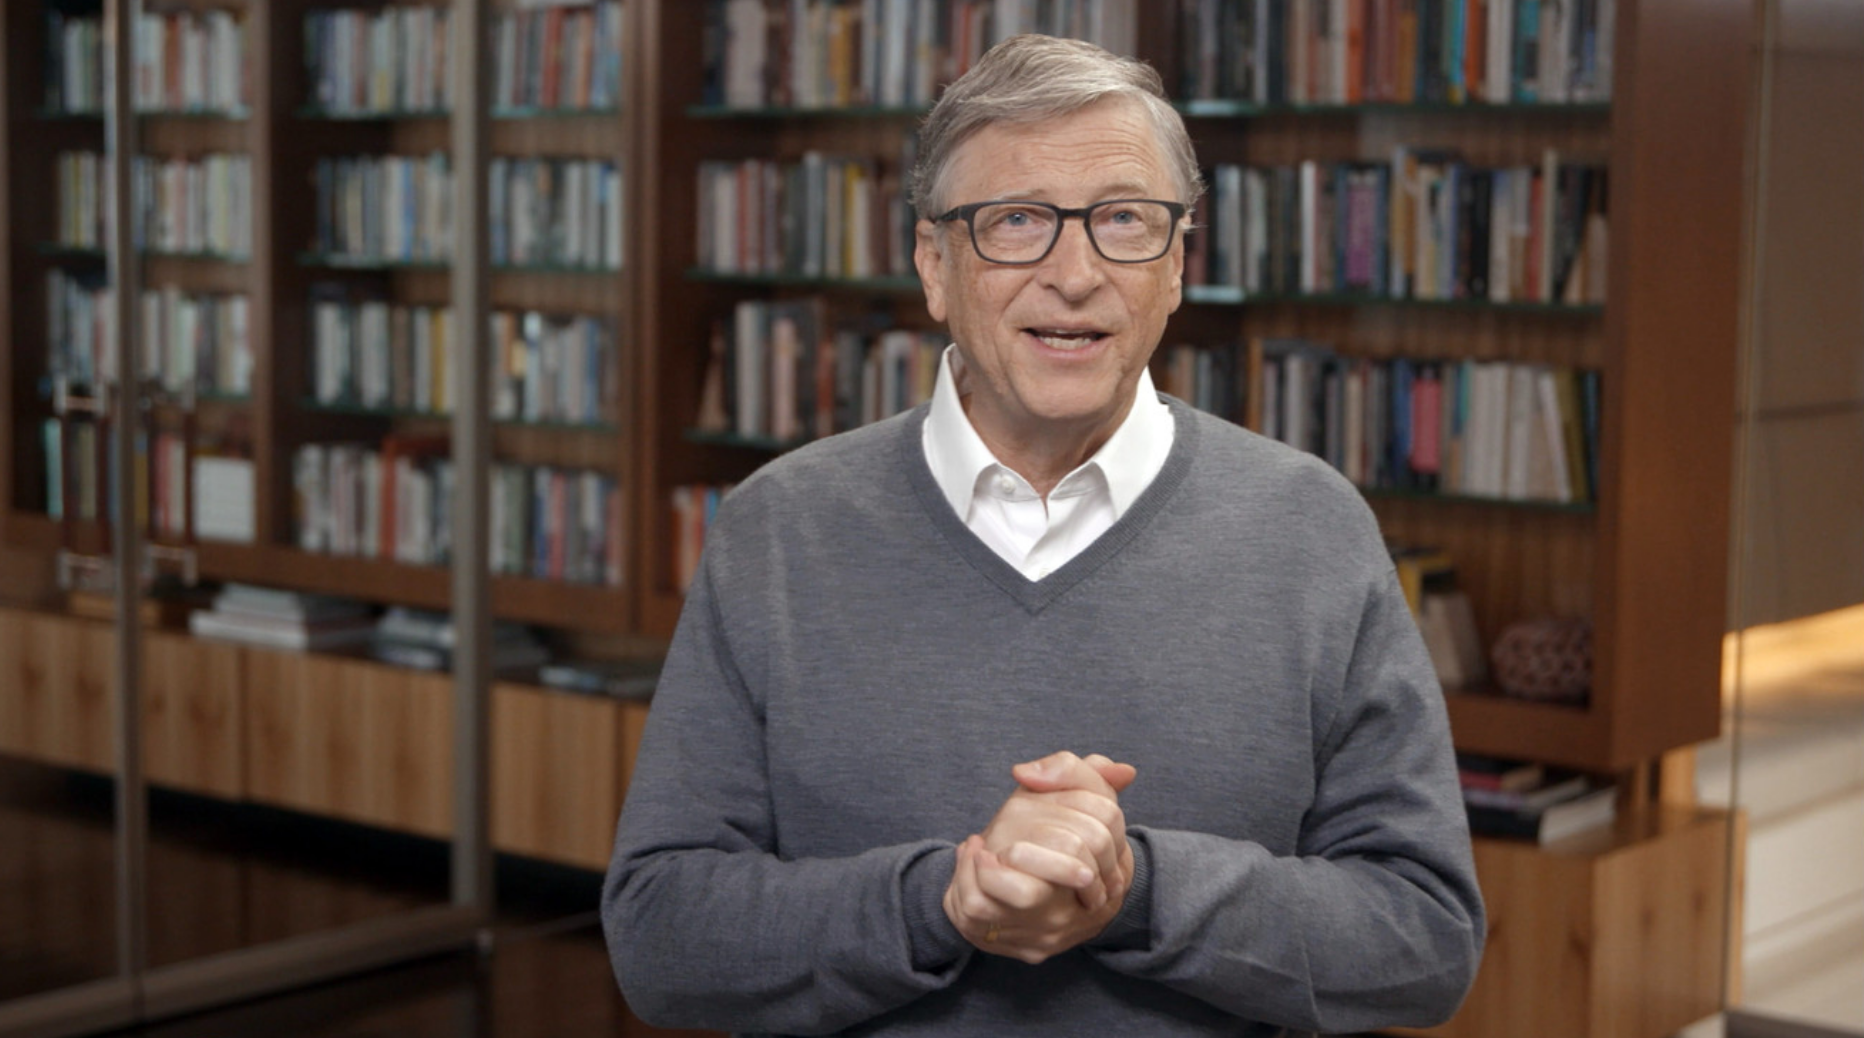 Bill Gates Says Trump's Lack Of Leadership Is Making Pandemic Picture 'More Bleak Than I Would Have Expected'